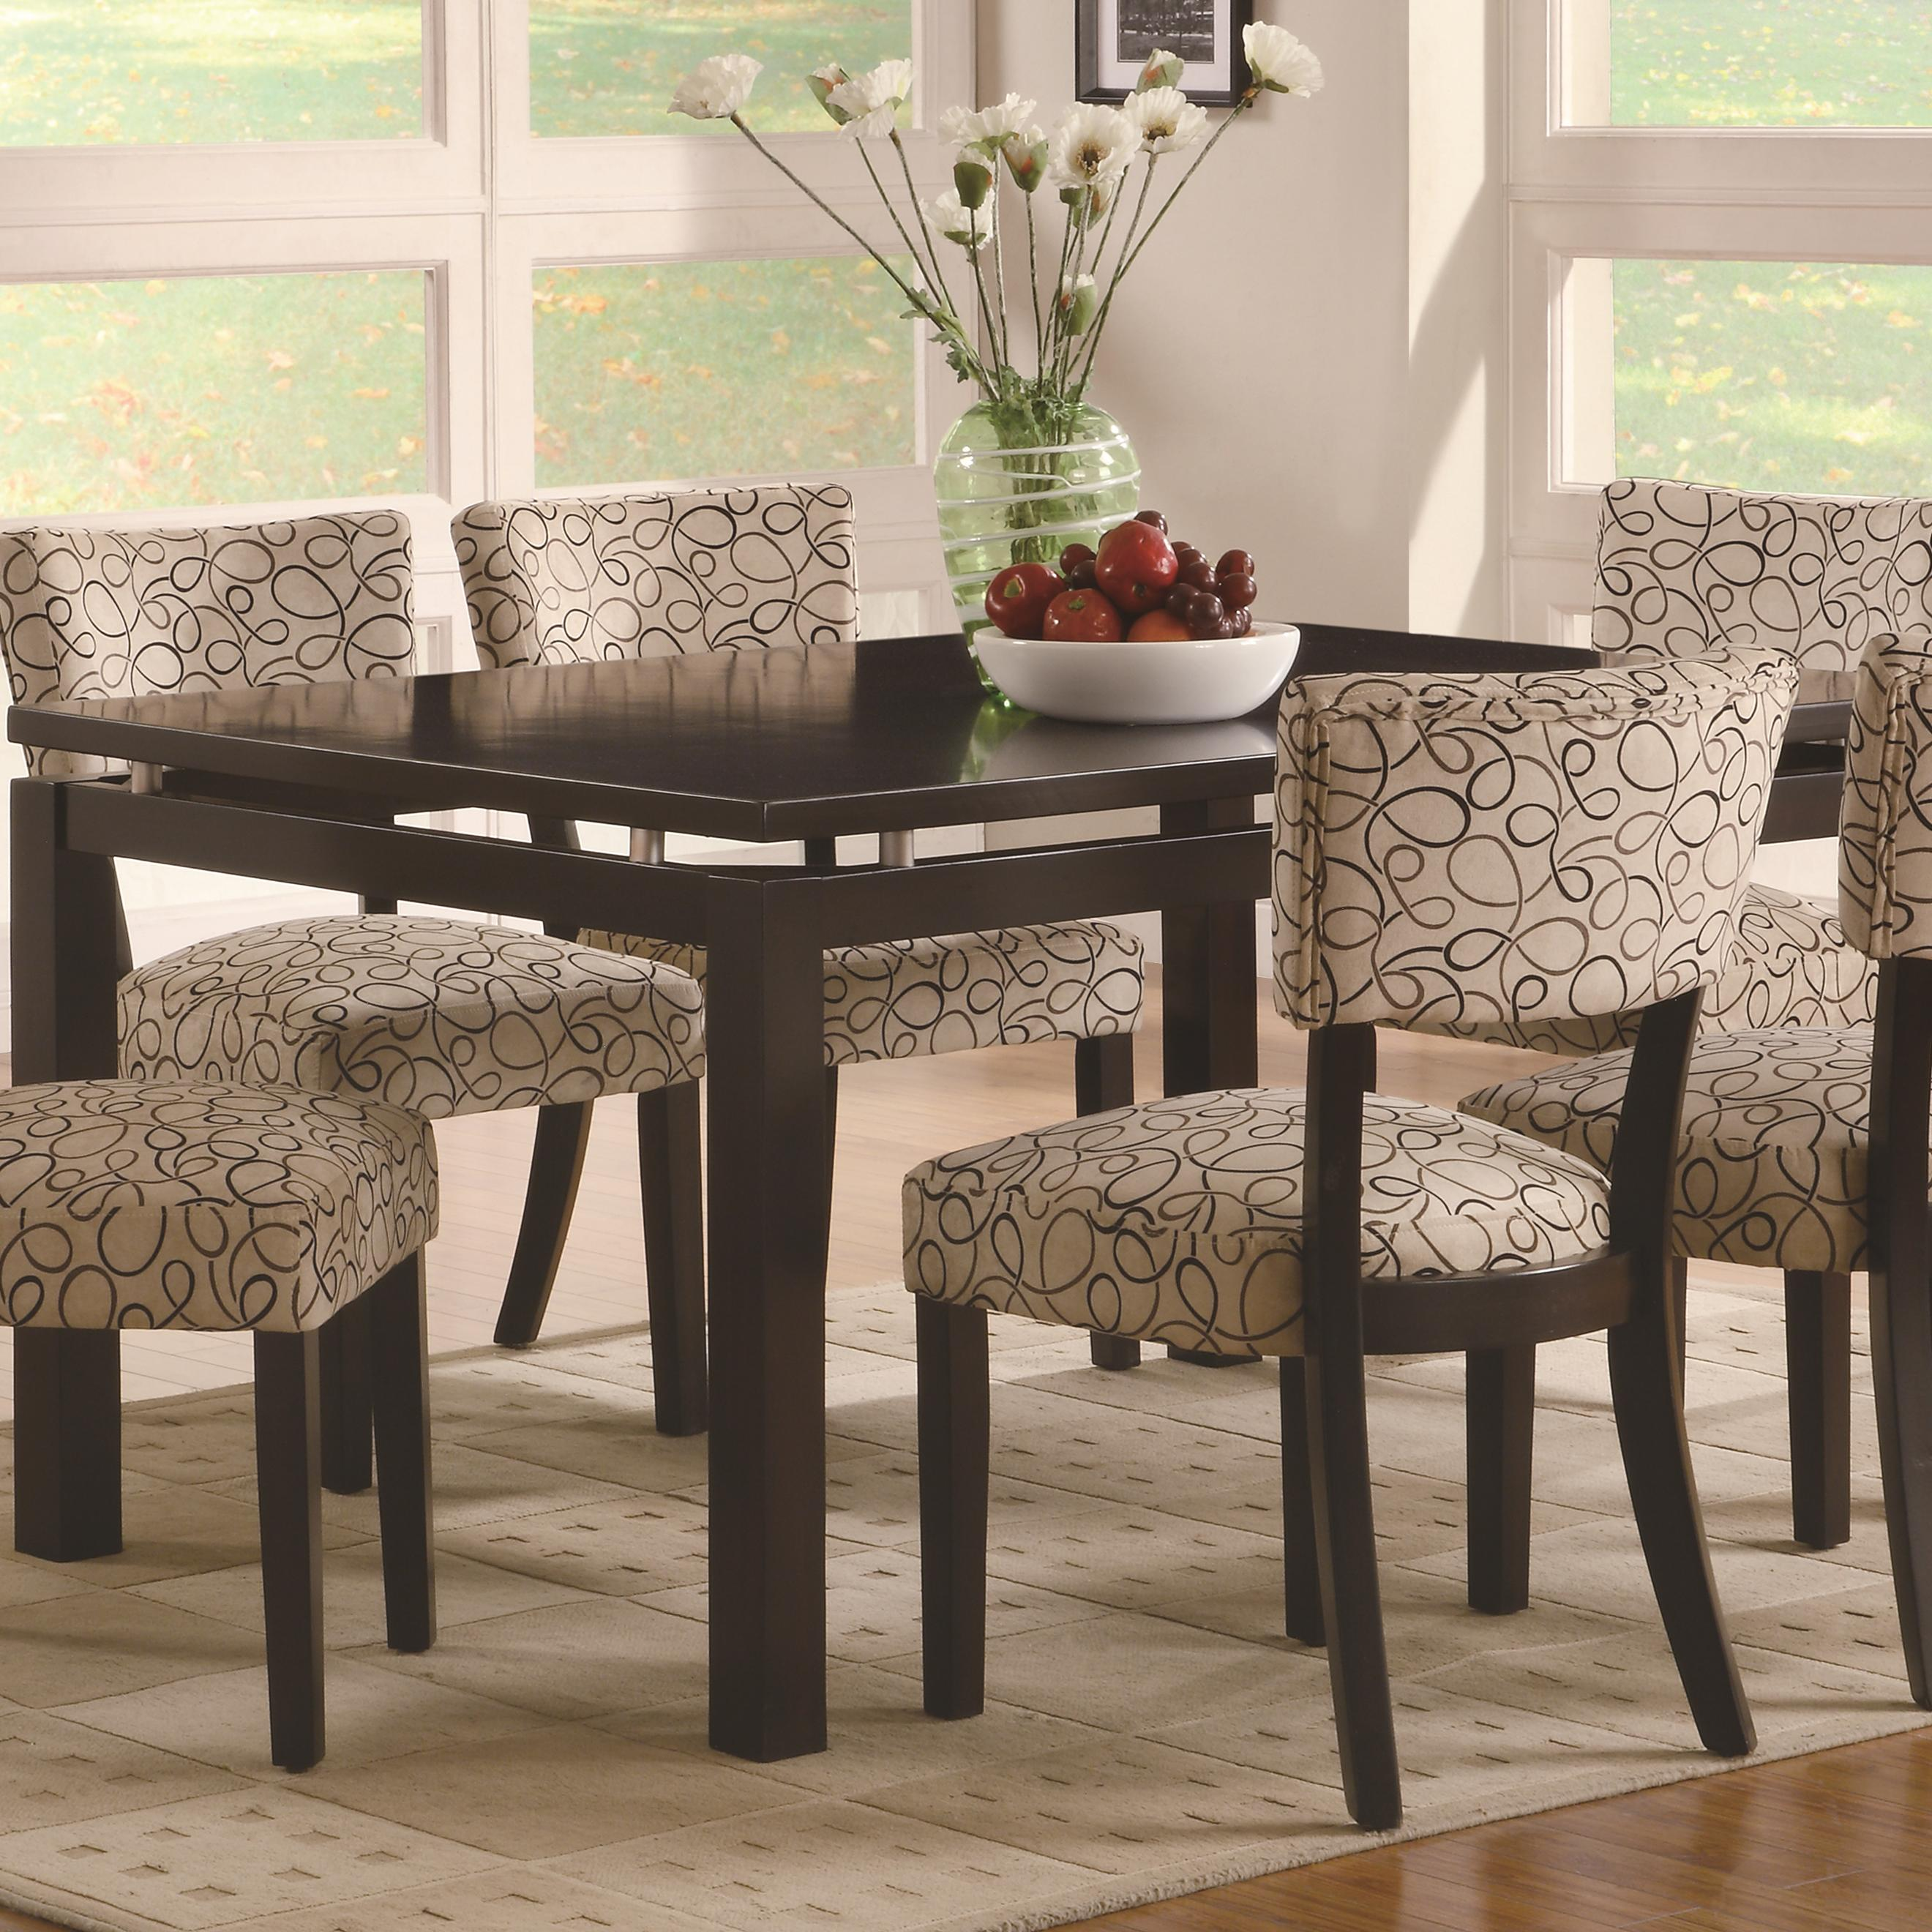 Libby Dining Table by Coaster at Lapeer Furniture & Mattress Center